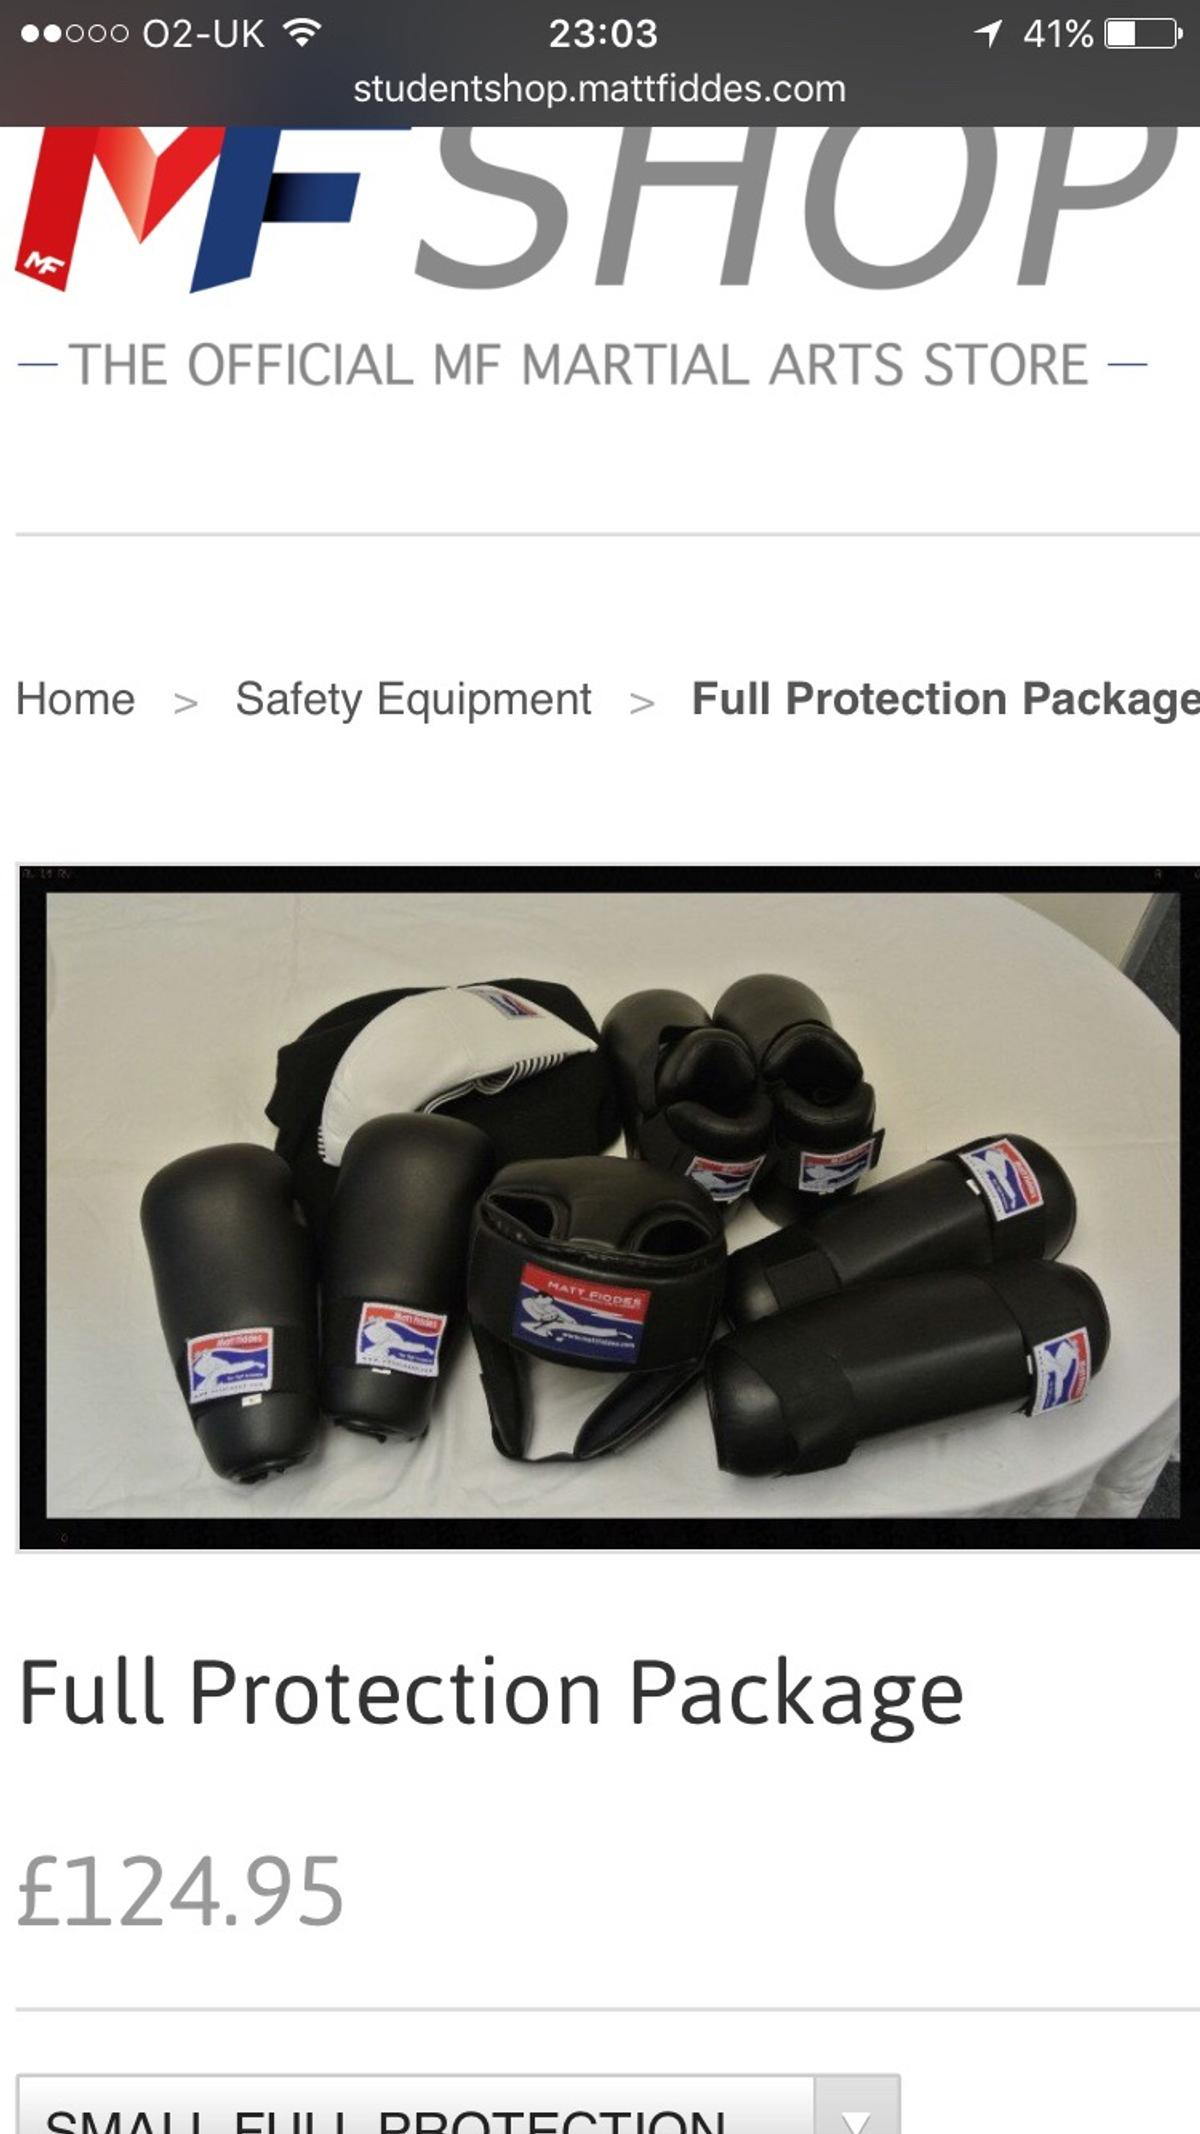 Martial arts Matt Fiddes sparring kit